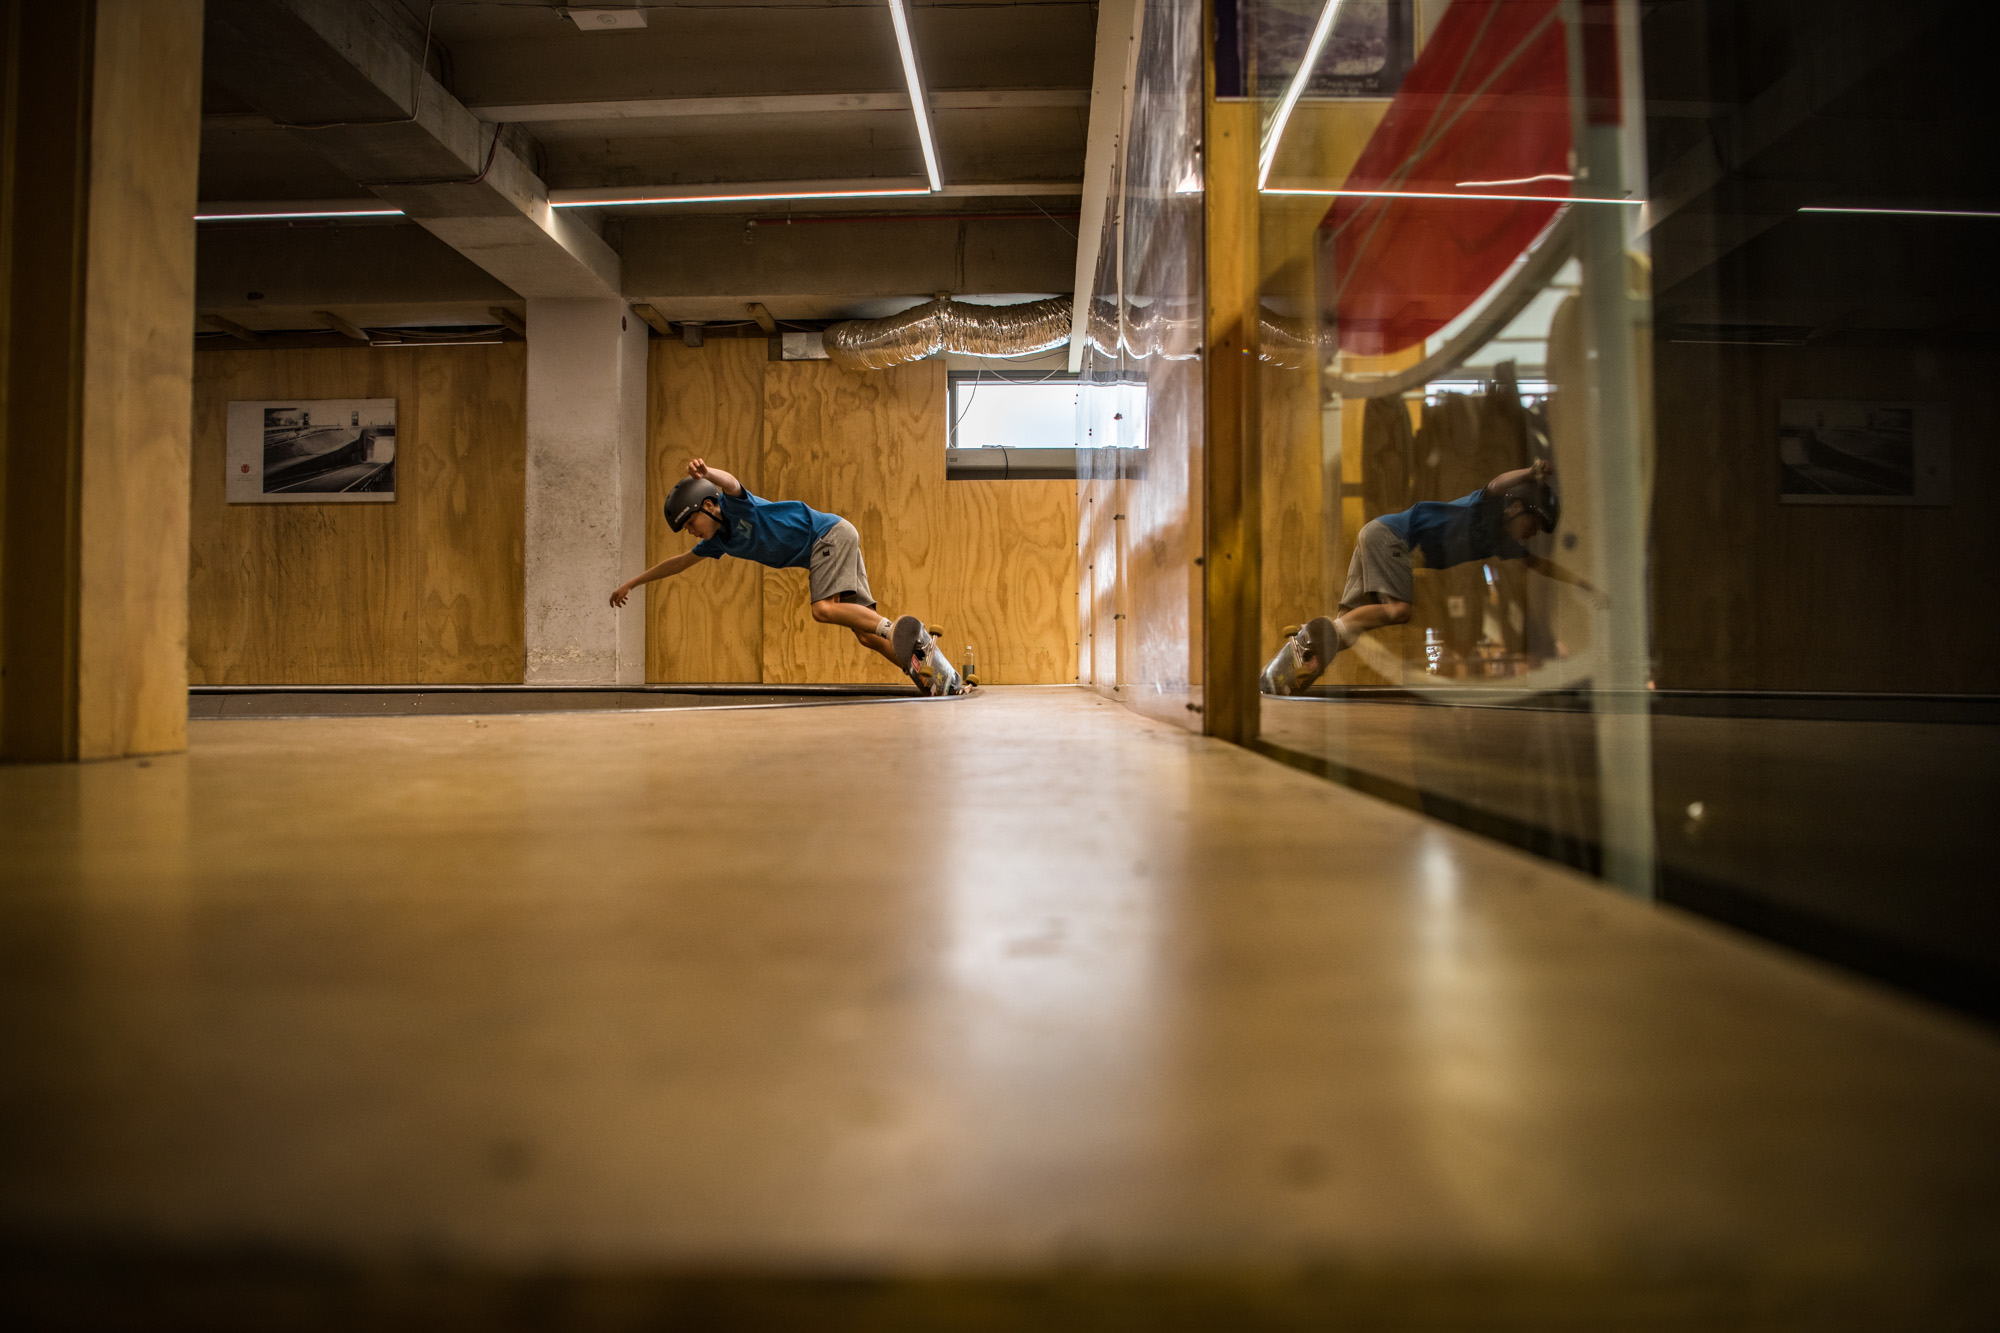 Boardertown Queenstown - Skateboarding Indoors